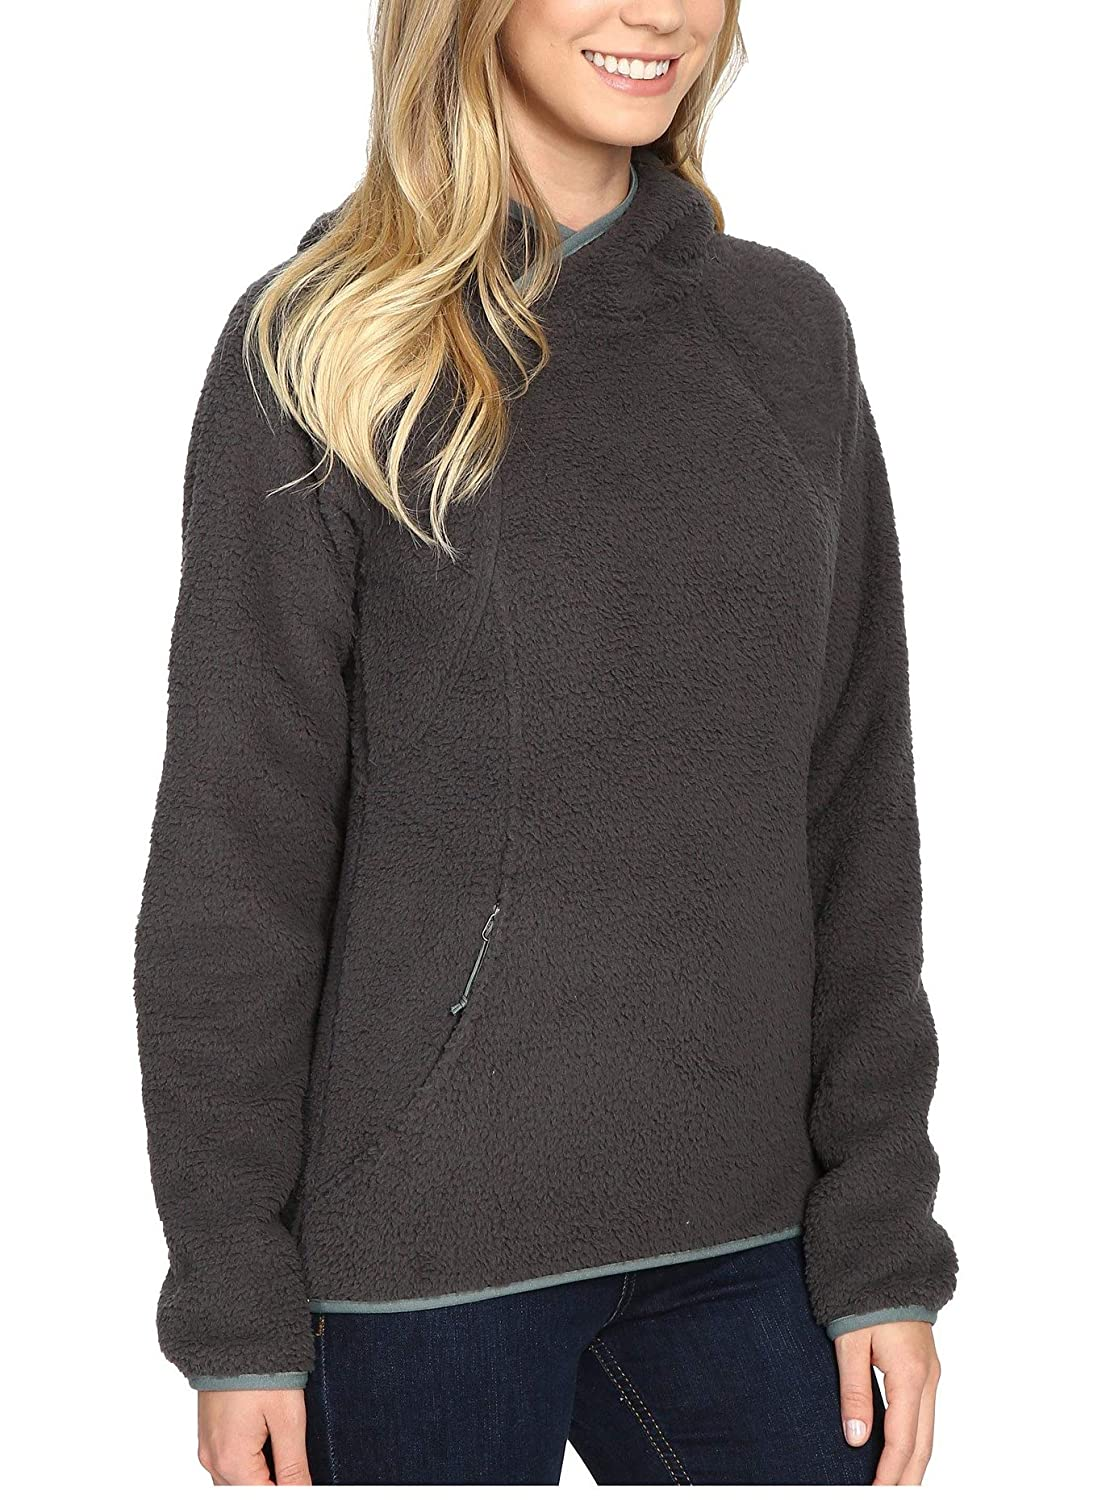 Aox Womens Pullover Hoodie Sweatshirt Long Sleeve Thicken Fleece Sherpa Outerwear with Pockets